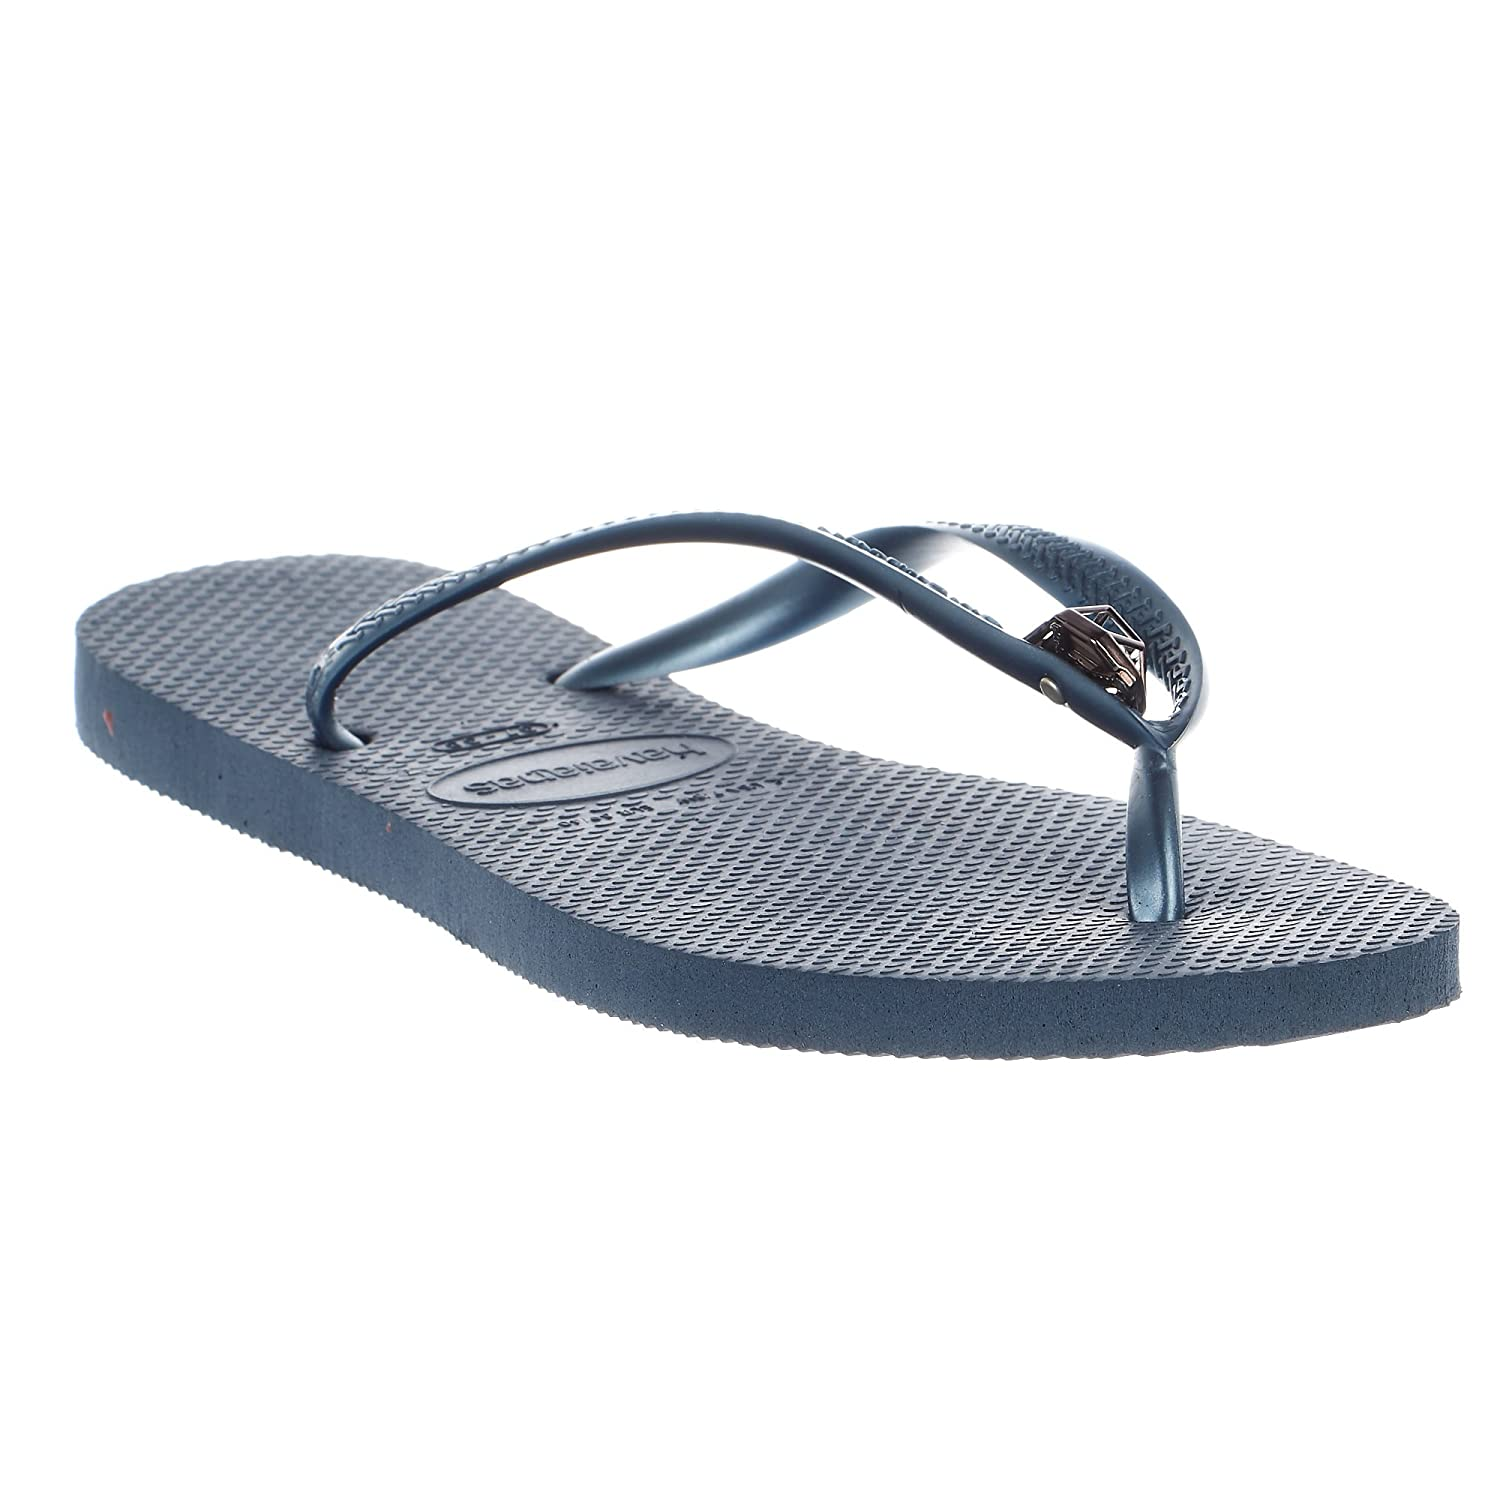 Havaianas Women Slim Diamond Sandals Flip-Flop Indigo/Blue (37-38 M Bra) r8wdj